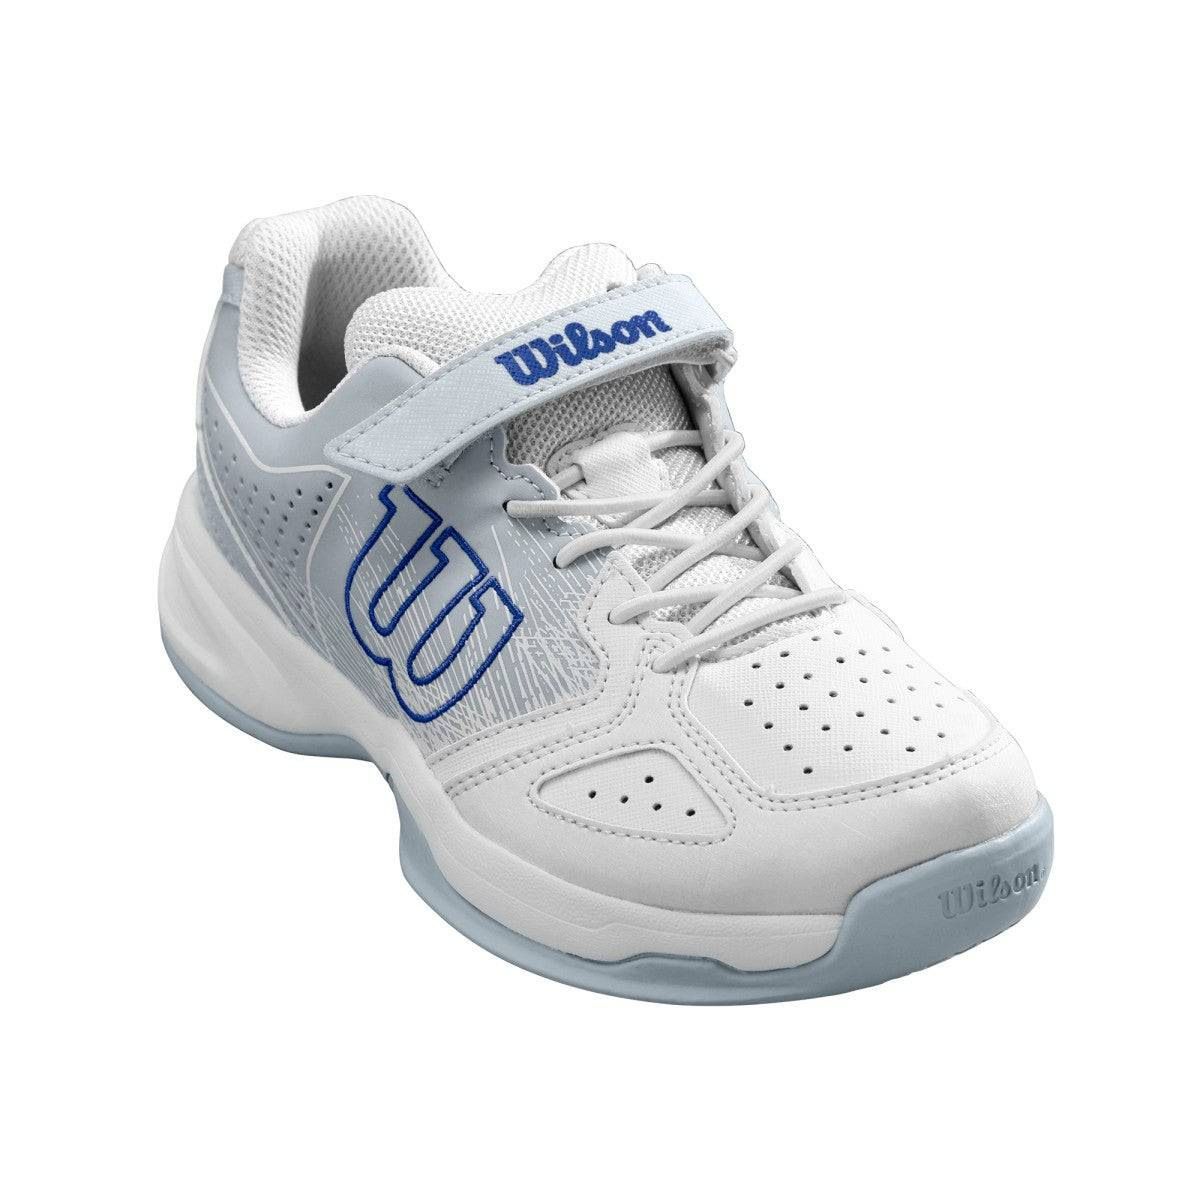 Wilson Junior Kaos K Tennis Shoes in White / Pearl Blue / Dazzling Blue - Size: 1.5 Y  - Unisex - White/Pearl Blue/Dazzling Blue - Size: 1.5 Y